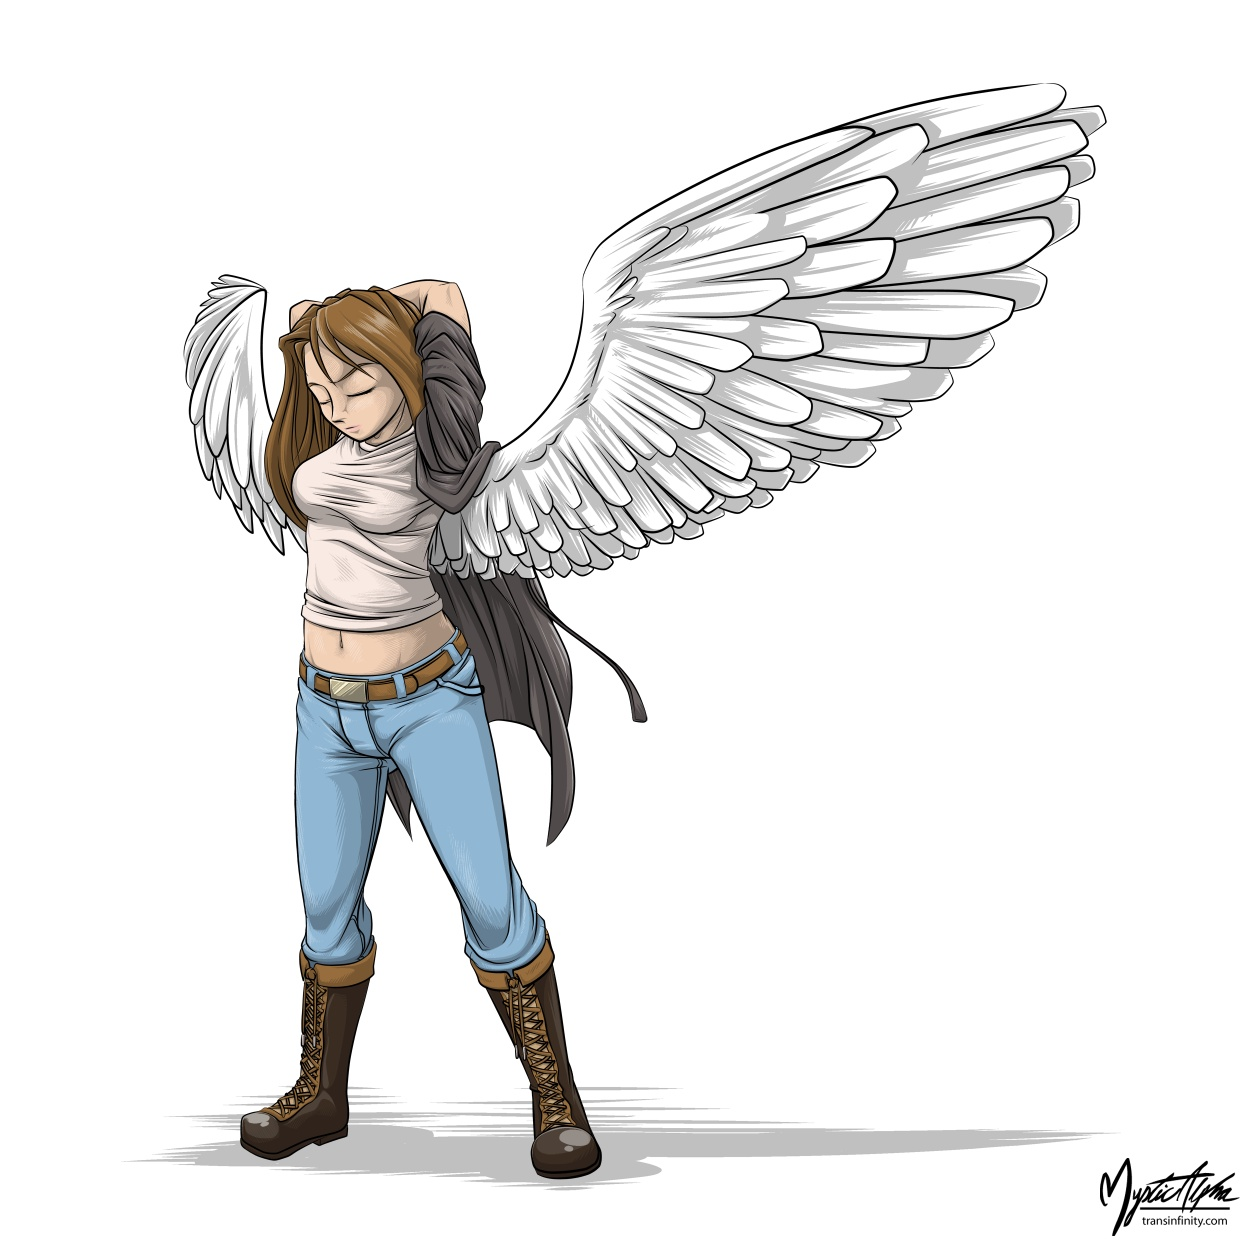 Winged Girl